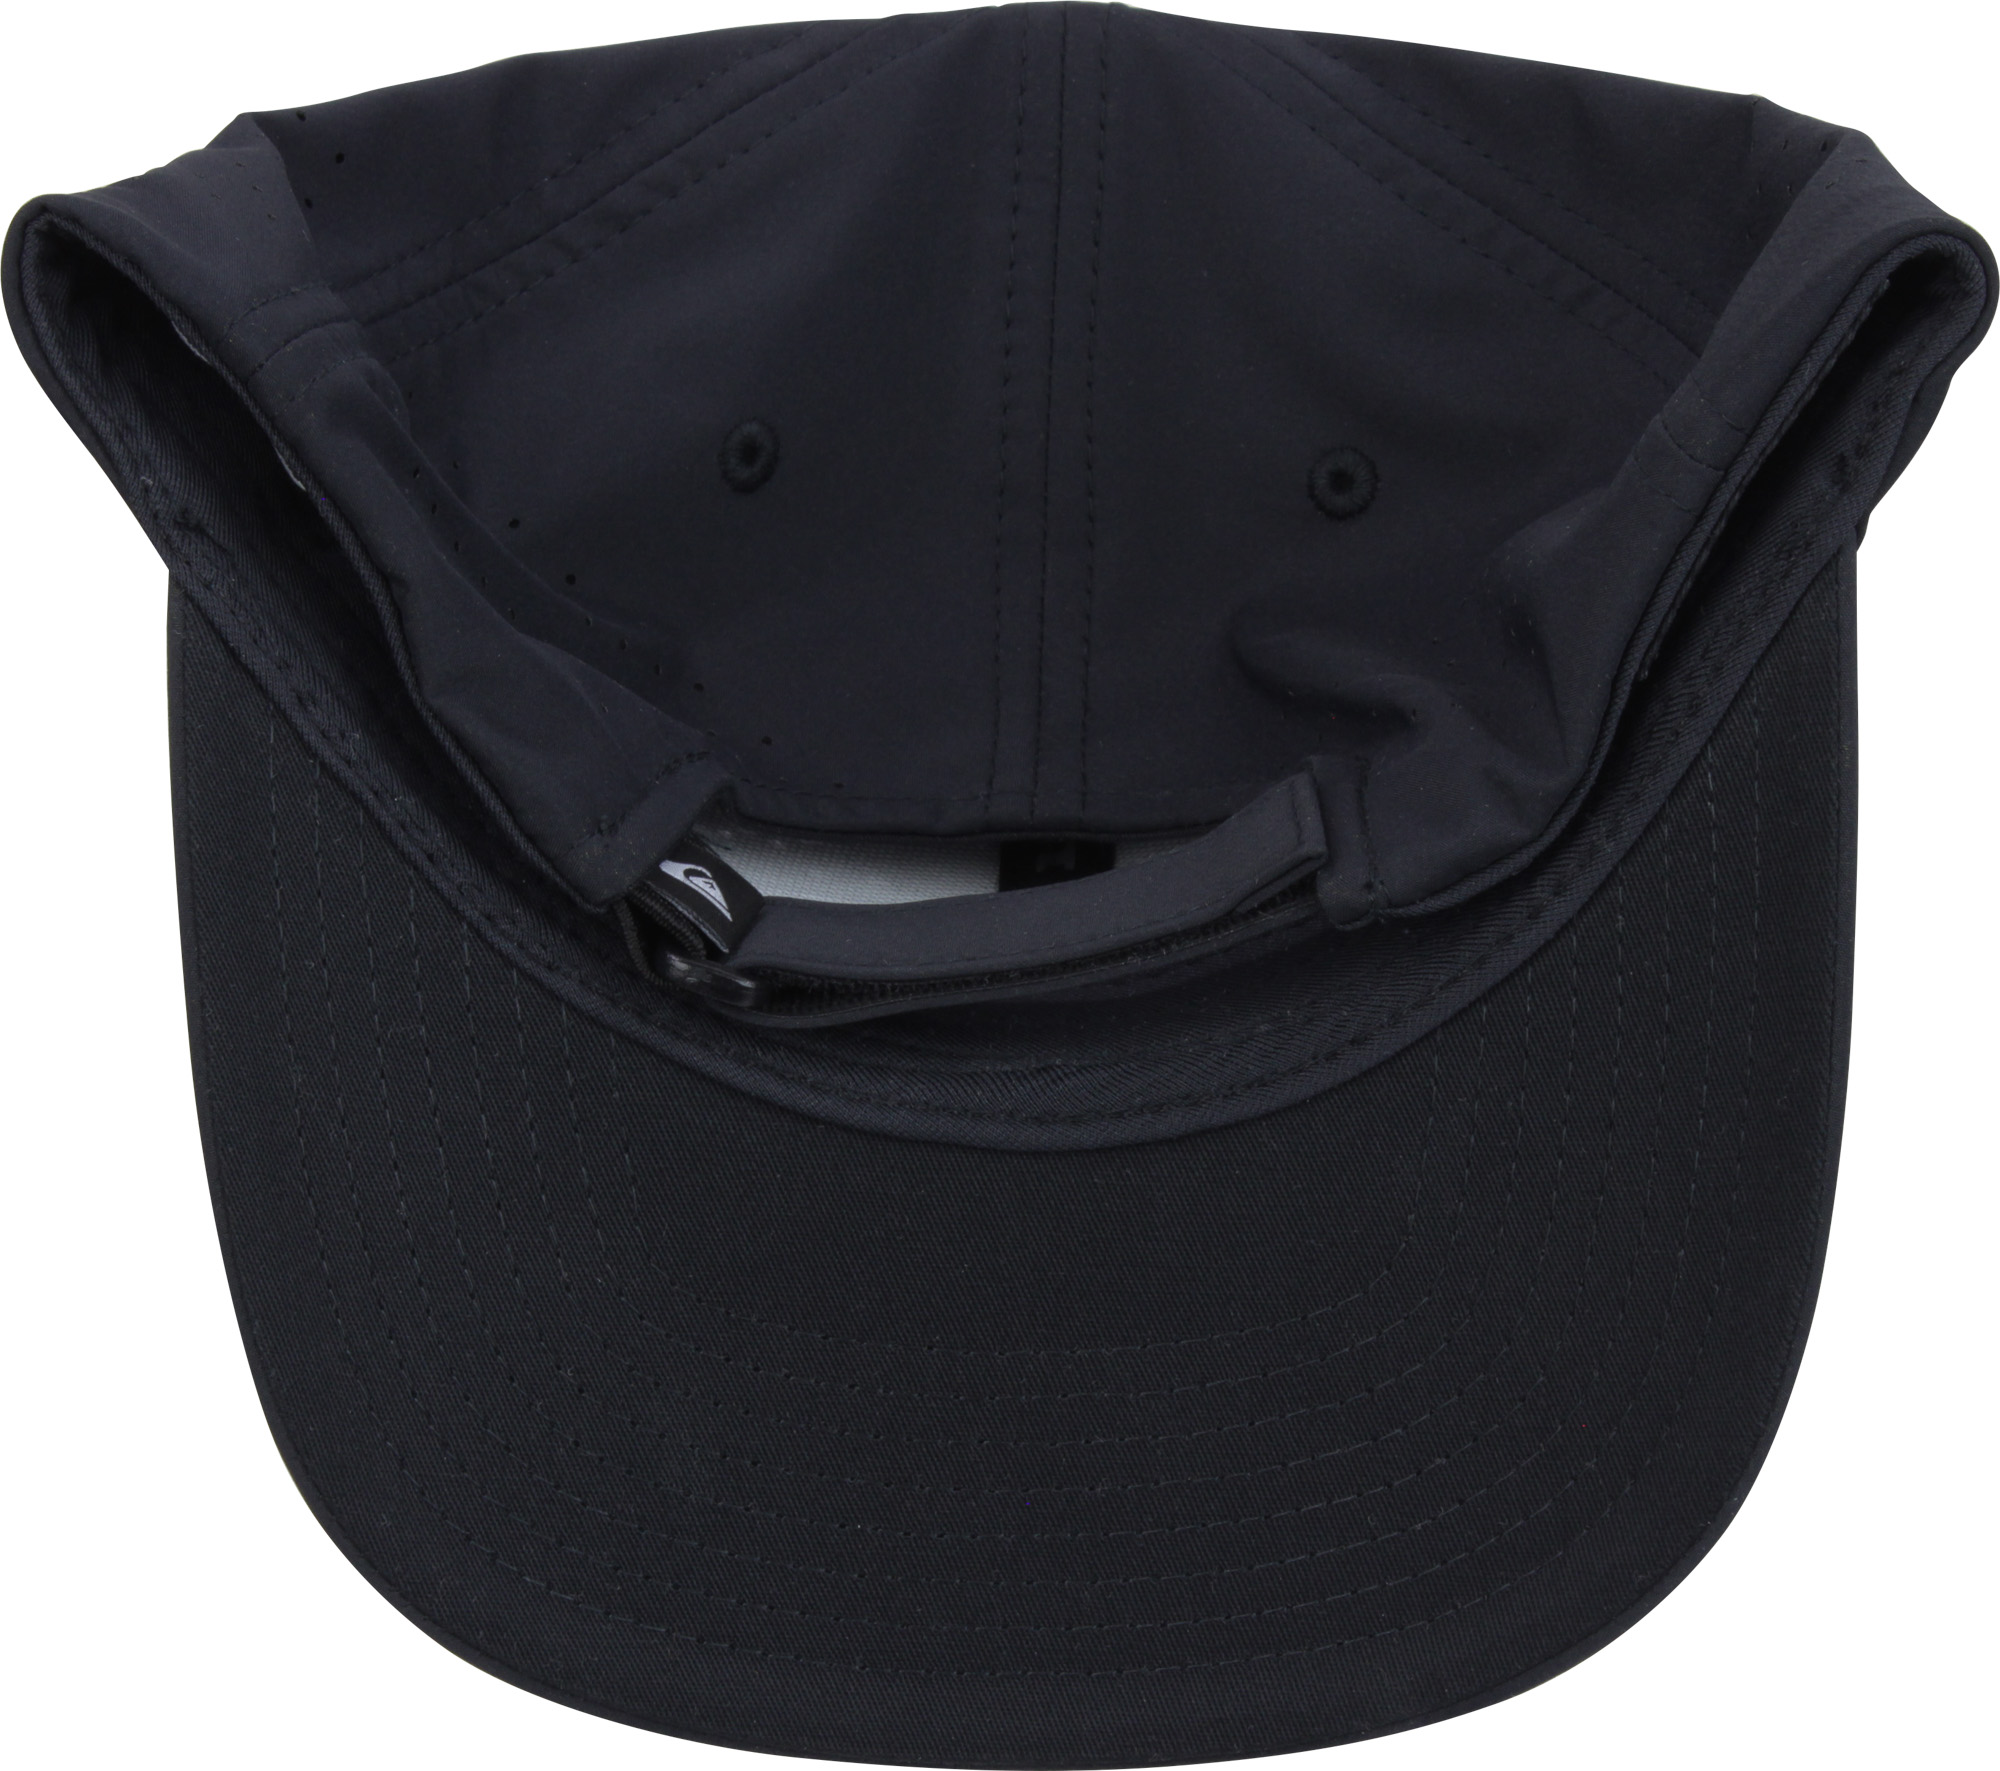 56efc3a409003 Quiksilver Mens Adapted Amphibian Flexfit Baseball Cap - Black